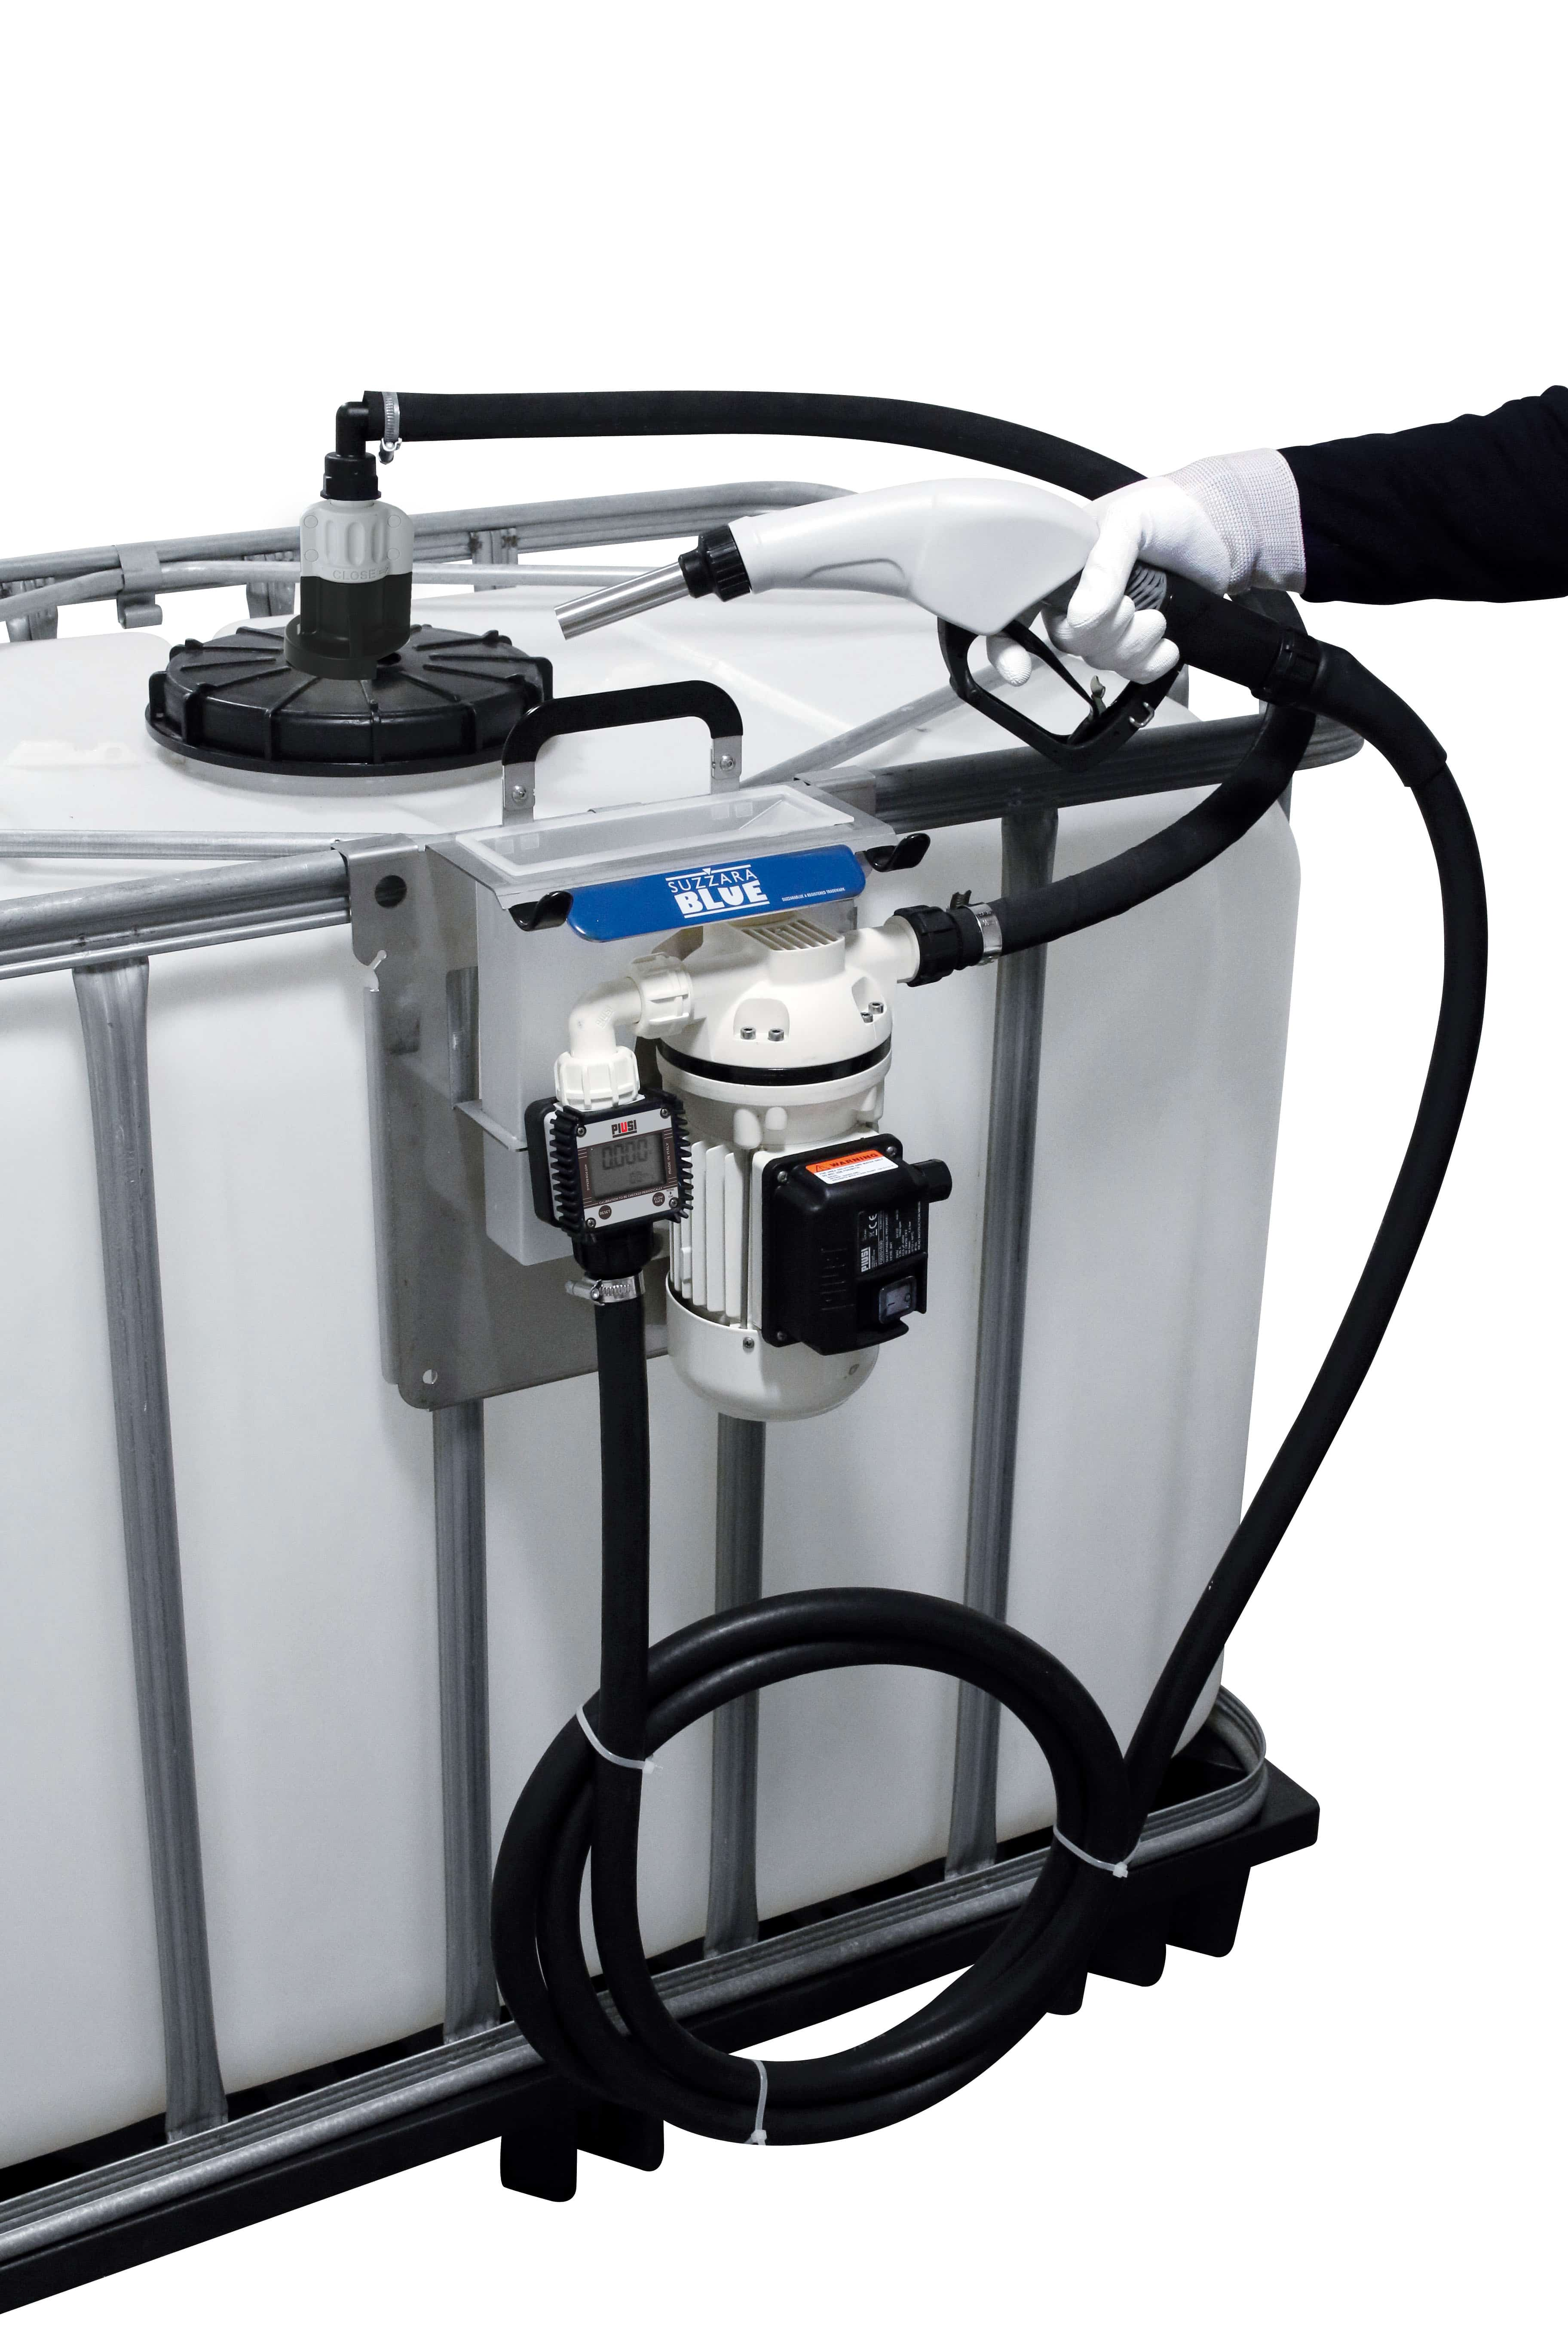 10215_01_Cematic-Blue-Pumpensystem-Basic-fuer-IBC